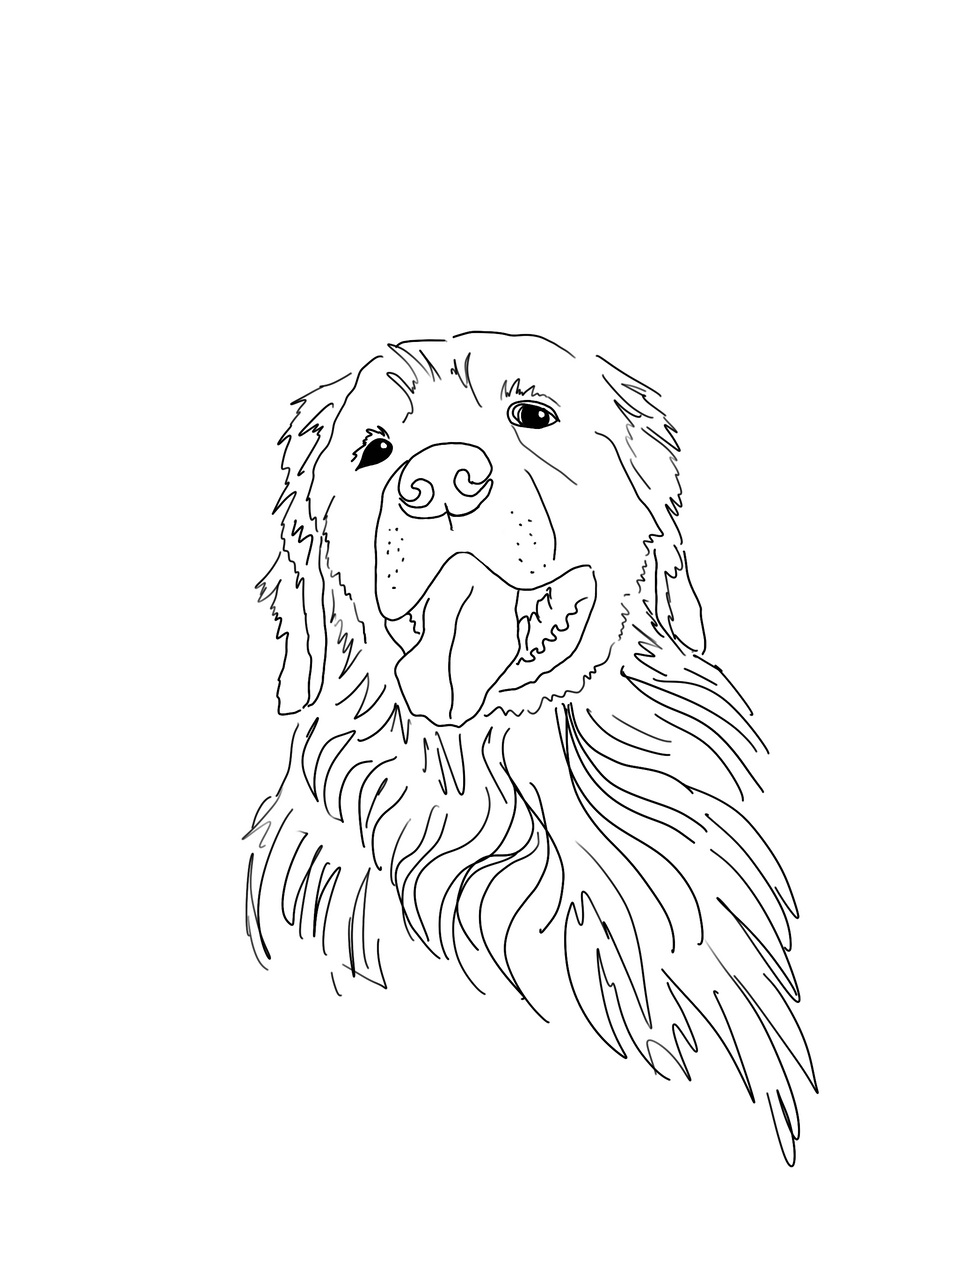 Sometimes I draw Dogs